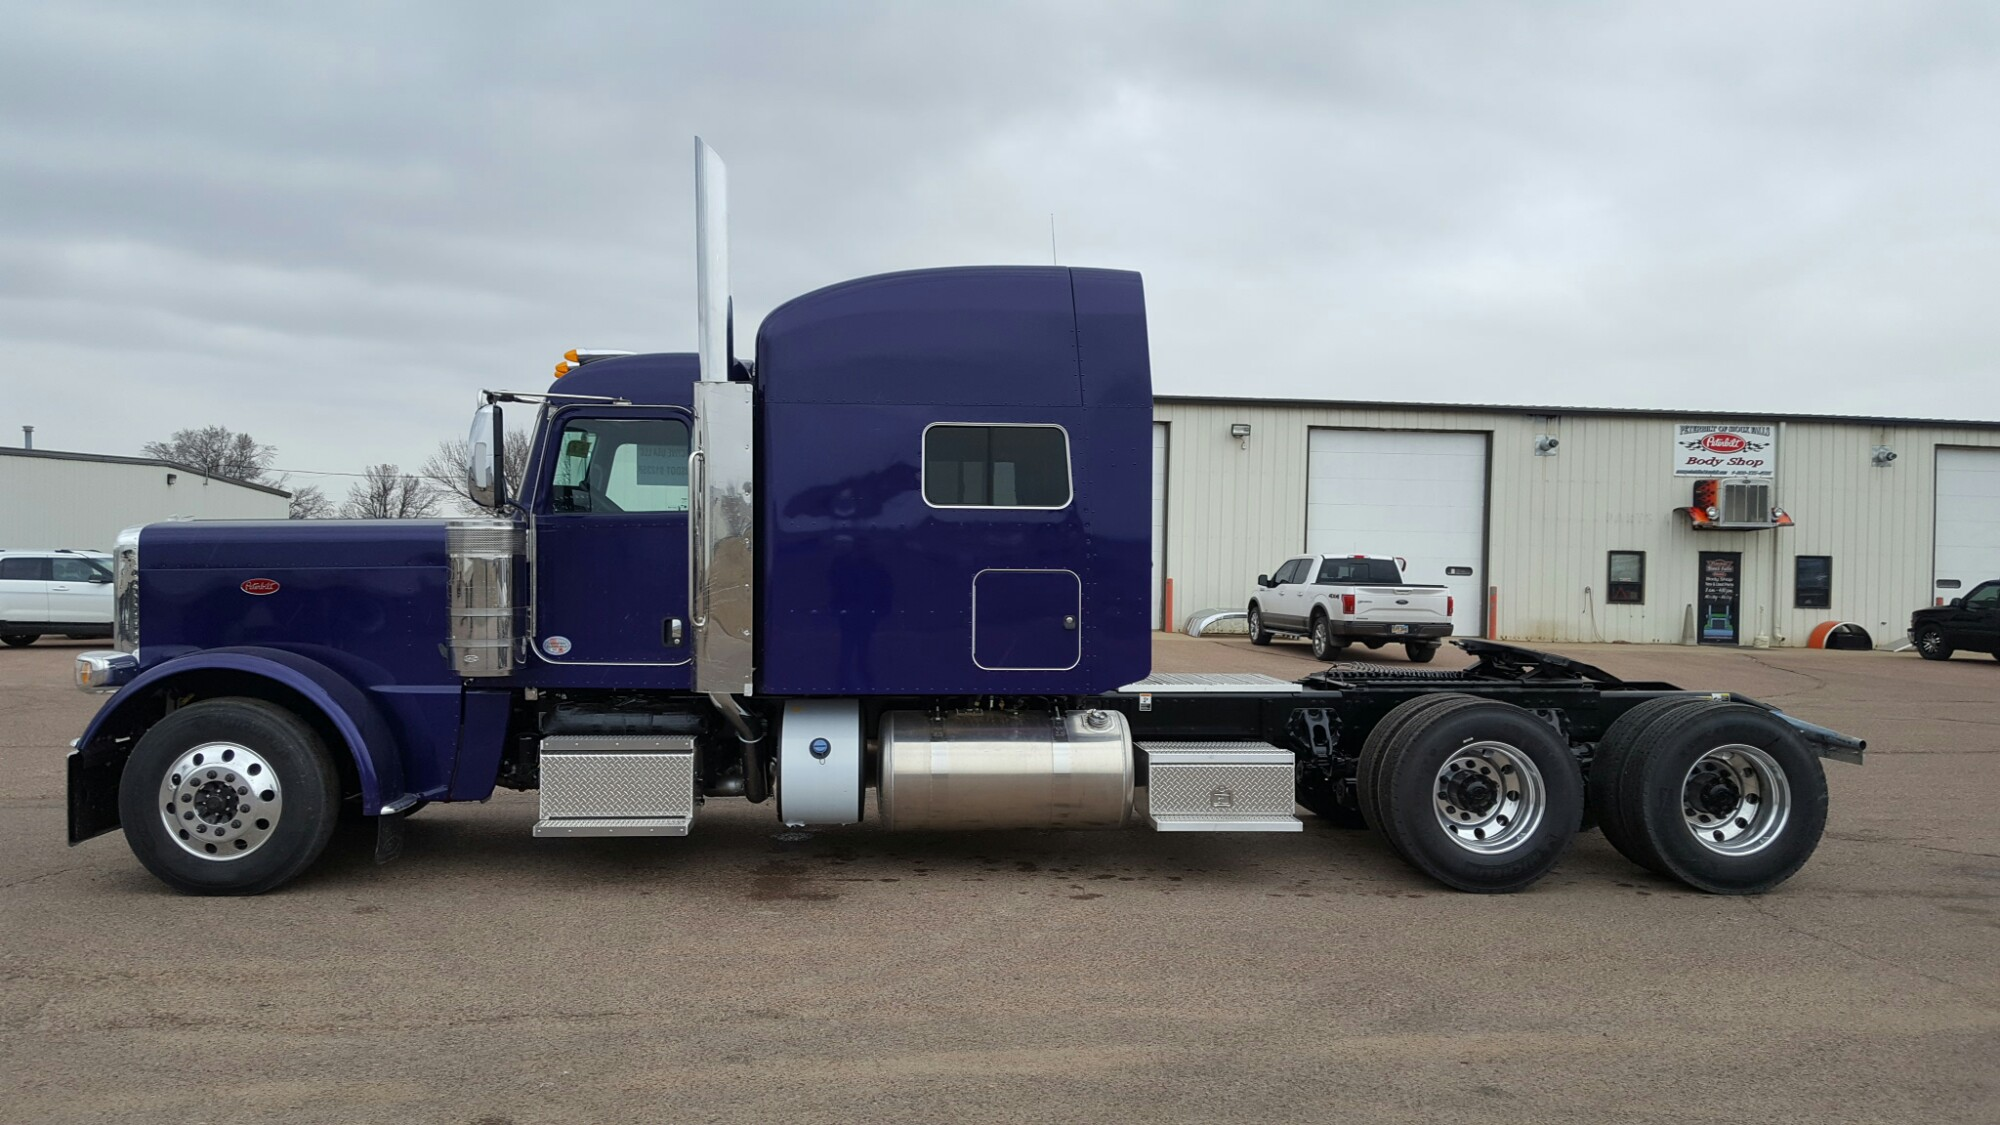 Wallpaper Stores In Sioux Falls Sd 2018 Ultra Violet 389 Just In Peterbilt Of Sioux Falls